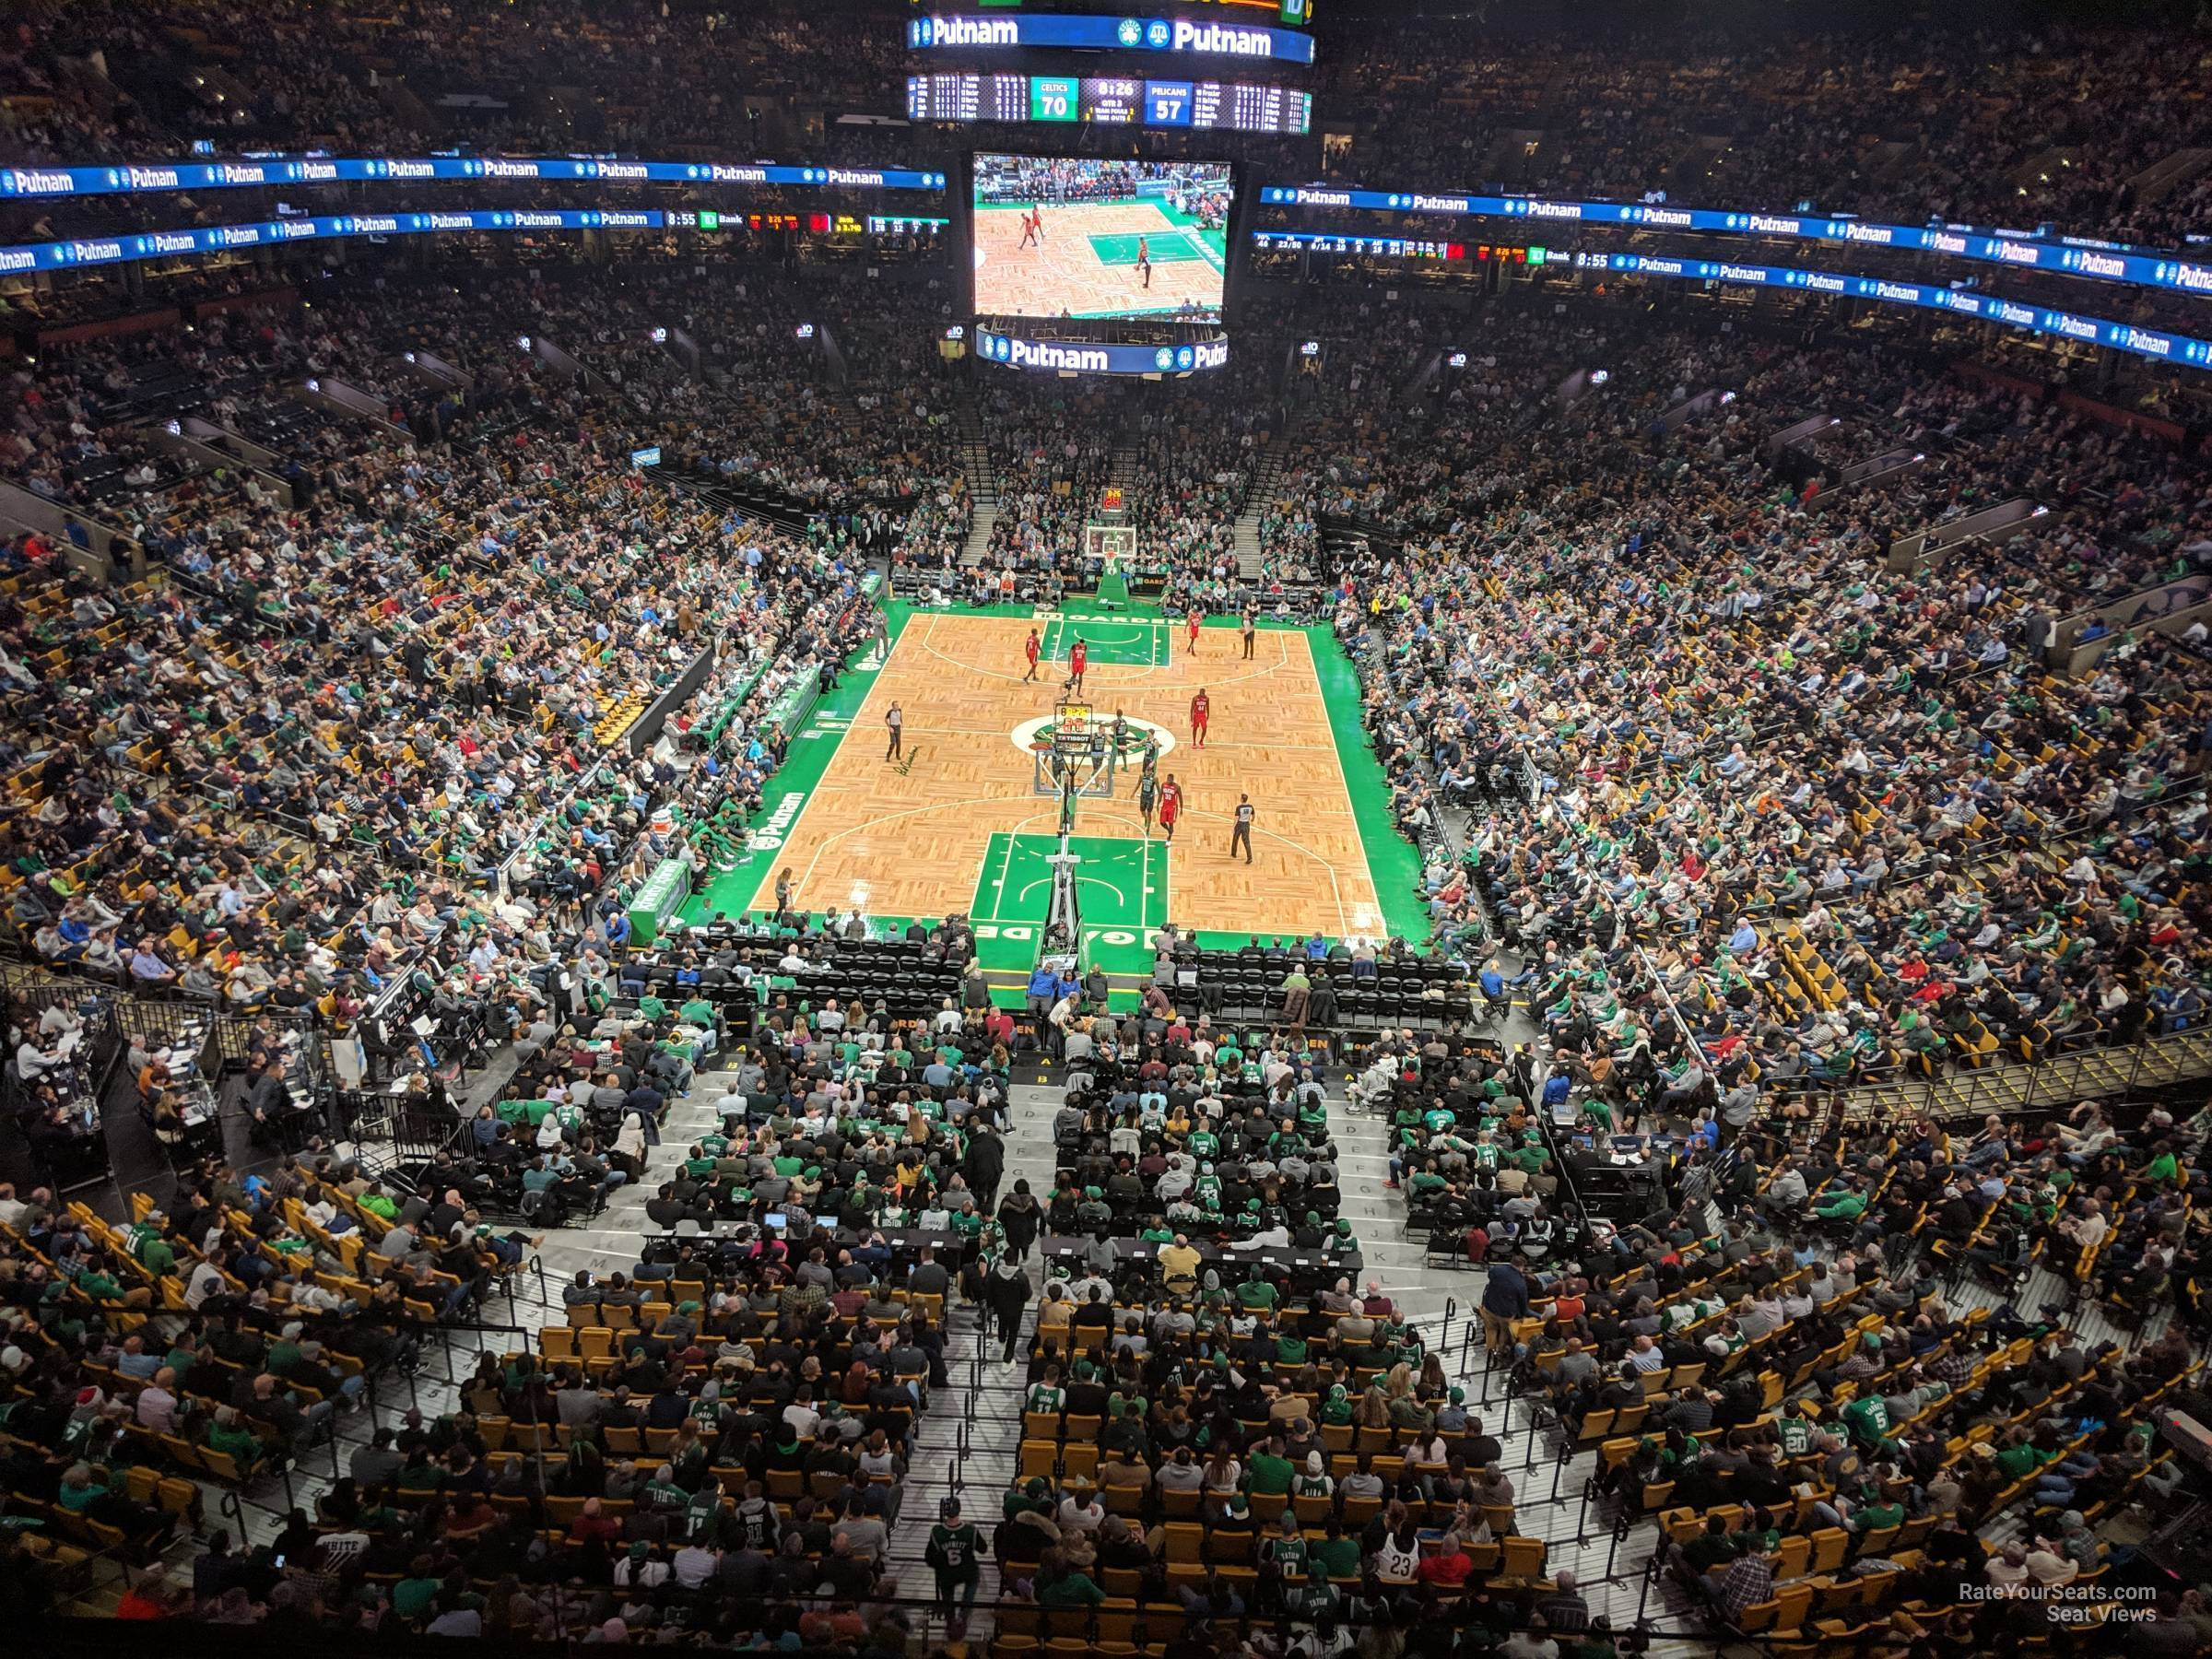 Td Garden Section 323 Boston Celtics Rateyourseats Com